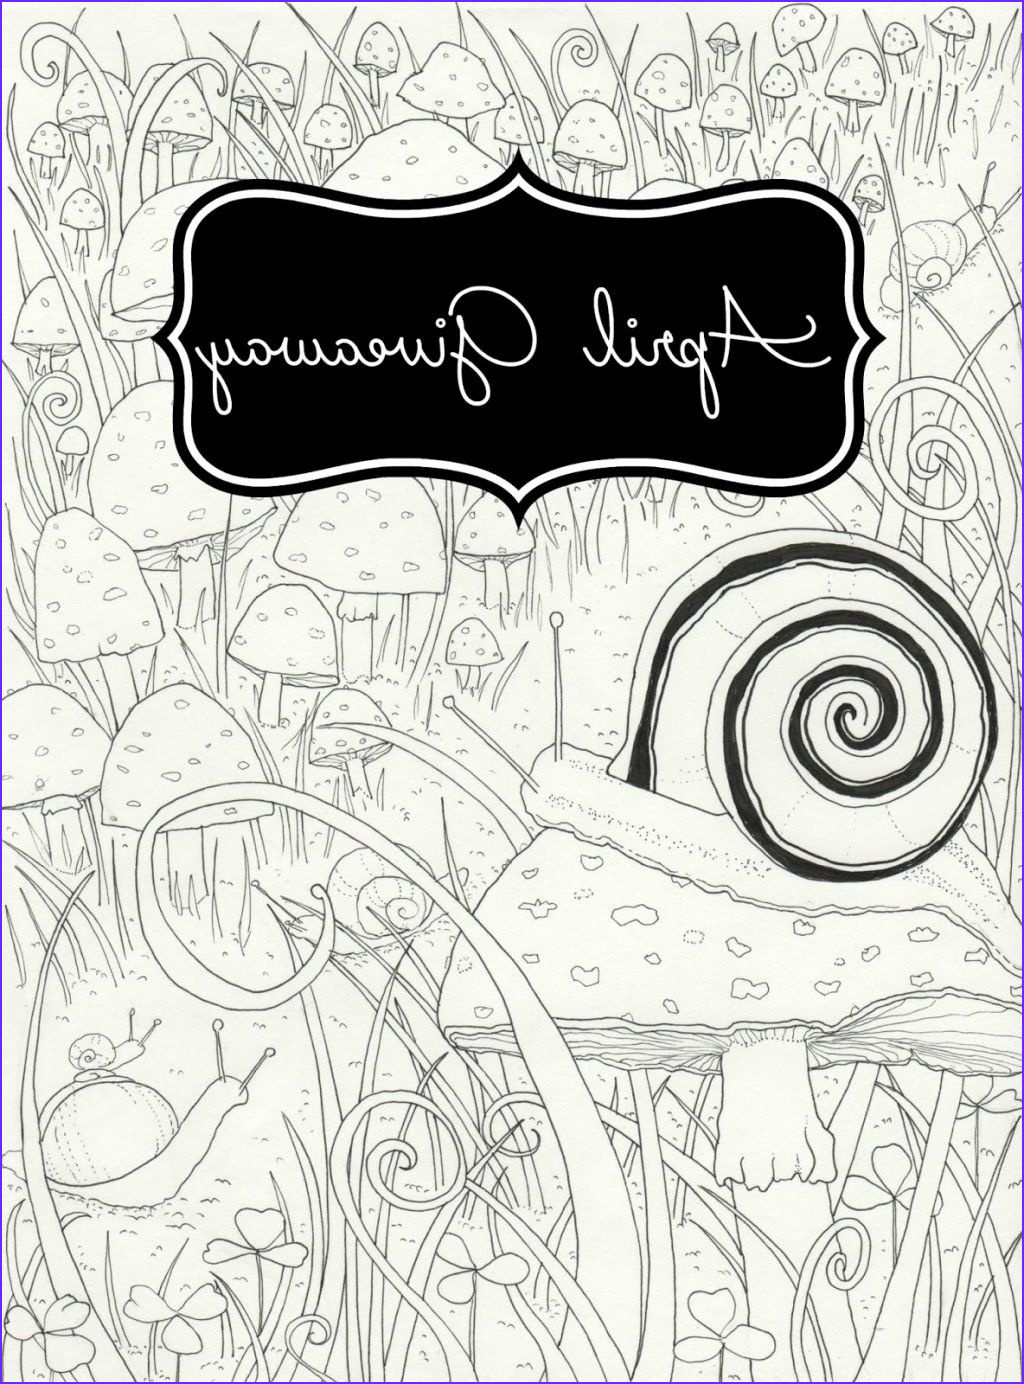 James Alexander Coloring Book Beautiful Stock Pin On Best Coloring Pages Books